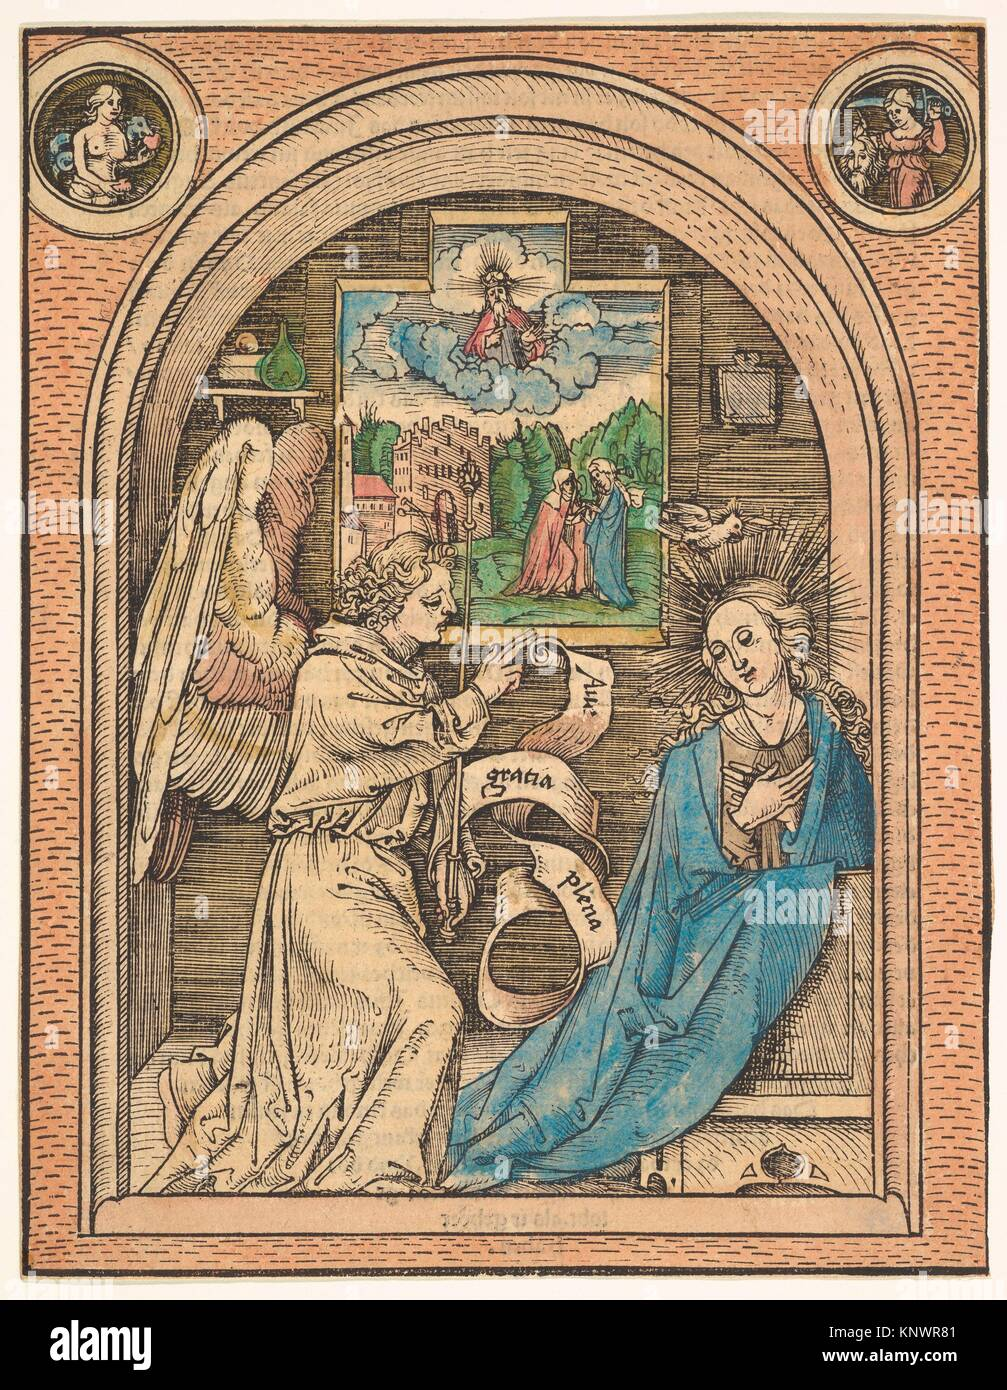 The Annunciation. Artist: Hans Wechtlin (German, Strasbourg ca. 1480/85-after 1526); Date: late 15th-early 16th - Stock Image